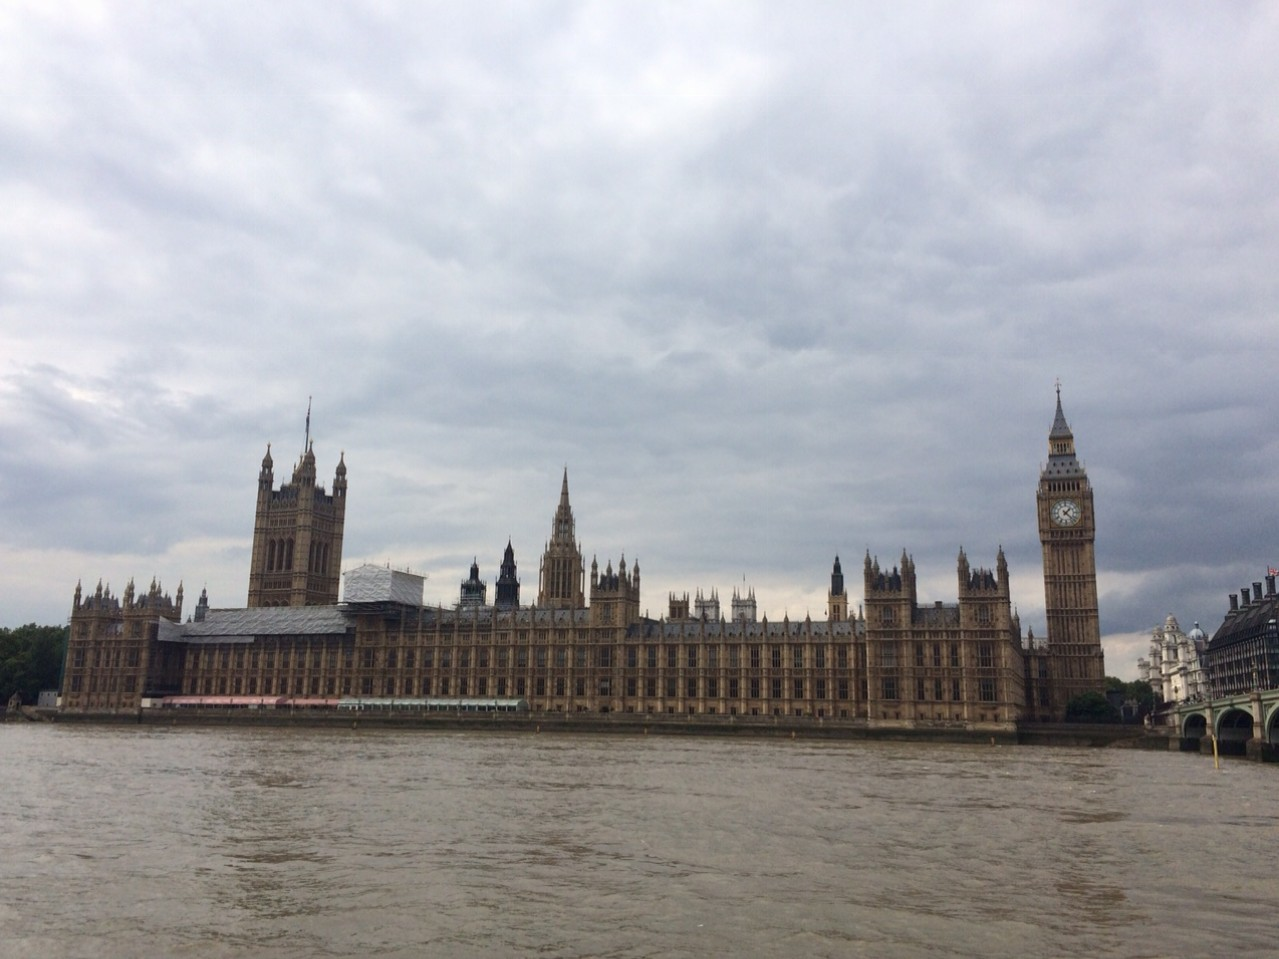 Looking back on Parliment from across the Thames.